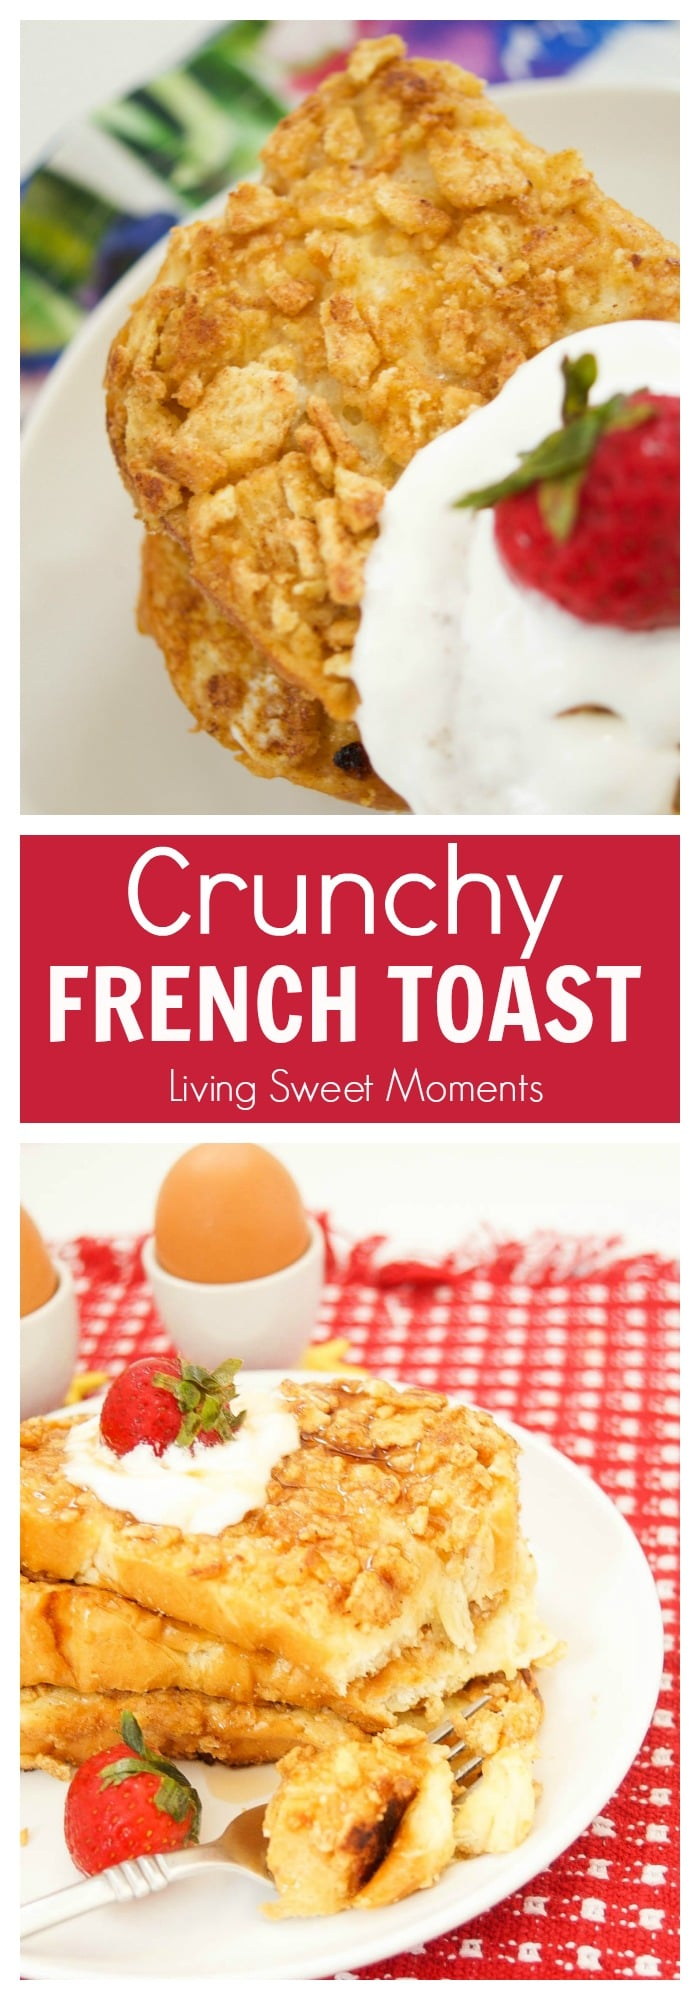 votes print cinnamon crunchy french toast this crunchy french toast ...